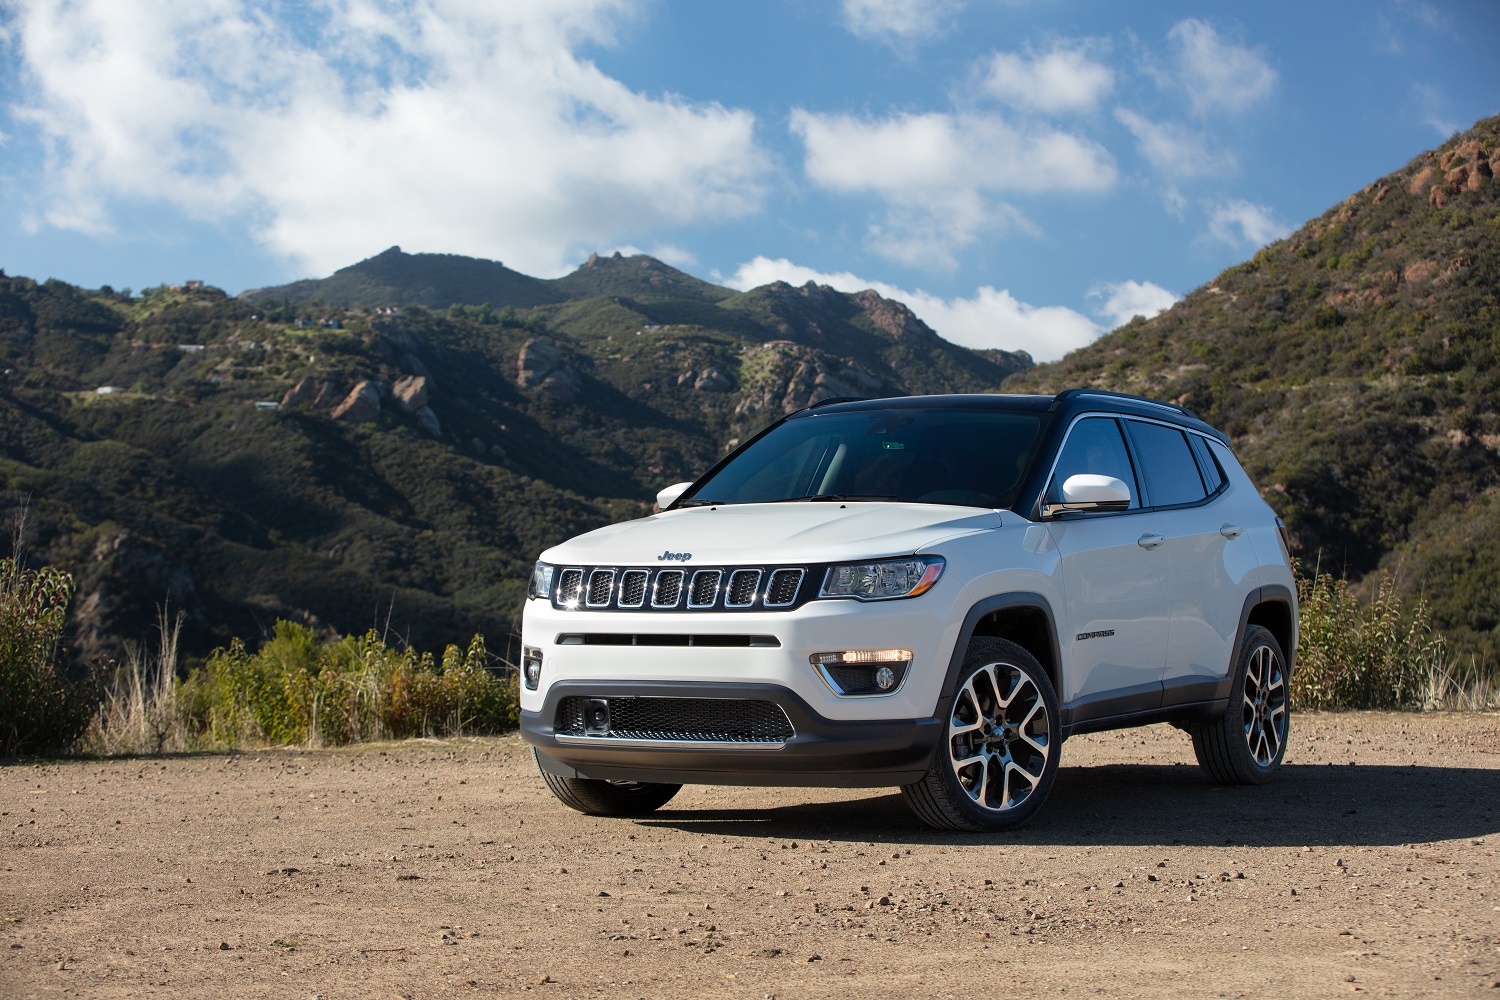 Test Drive SUVs with Dulles Chrysler Dodge Jeep Ram available in Leesburg, VA at Dulles Chrysler Dodge Jeep Ram